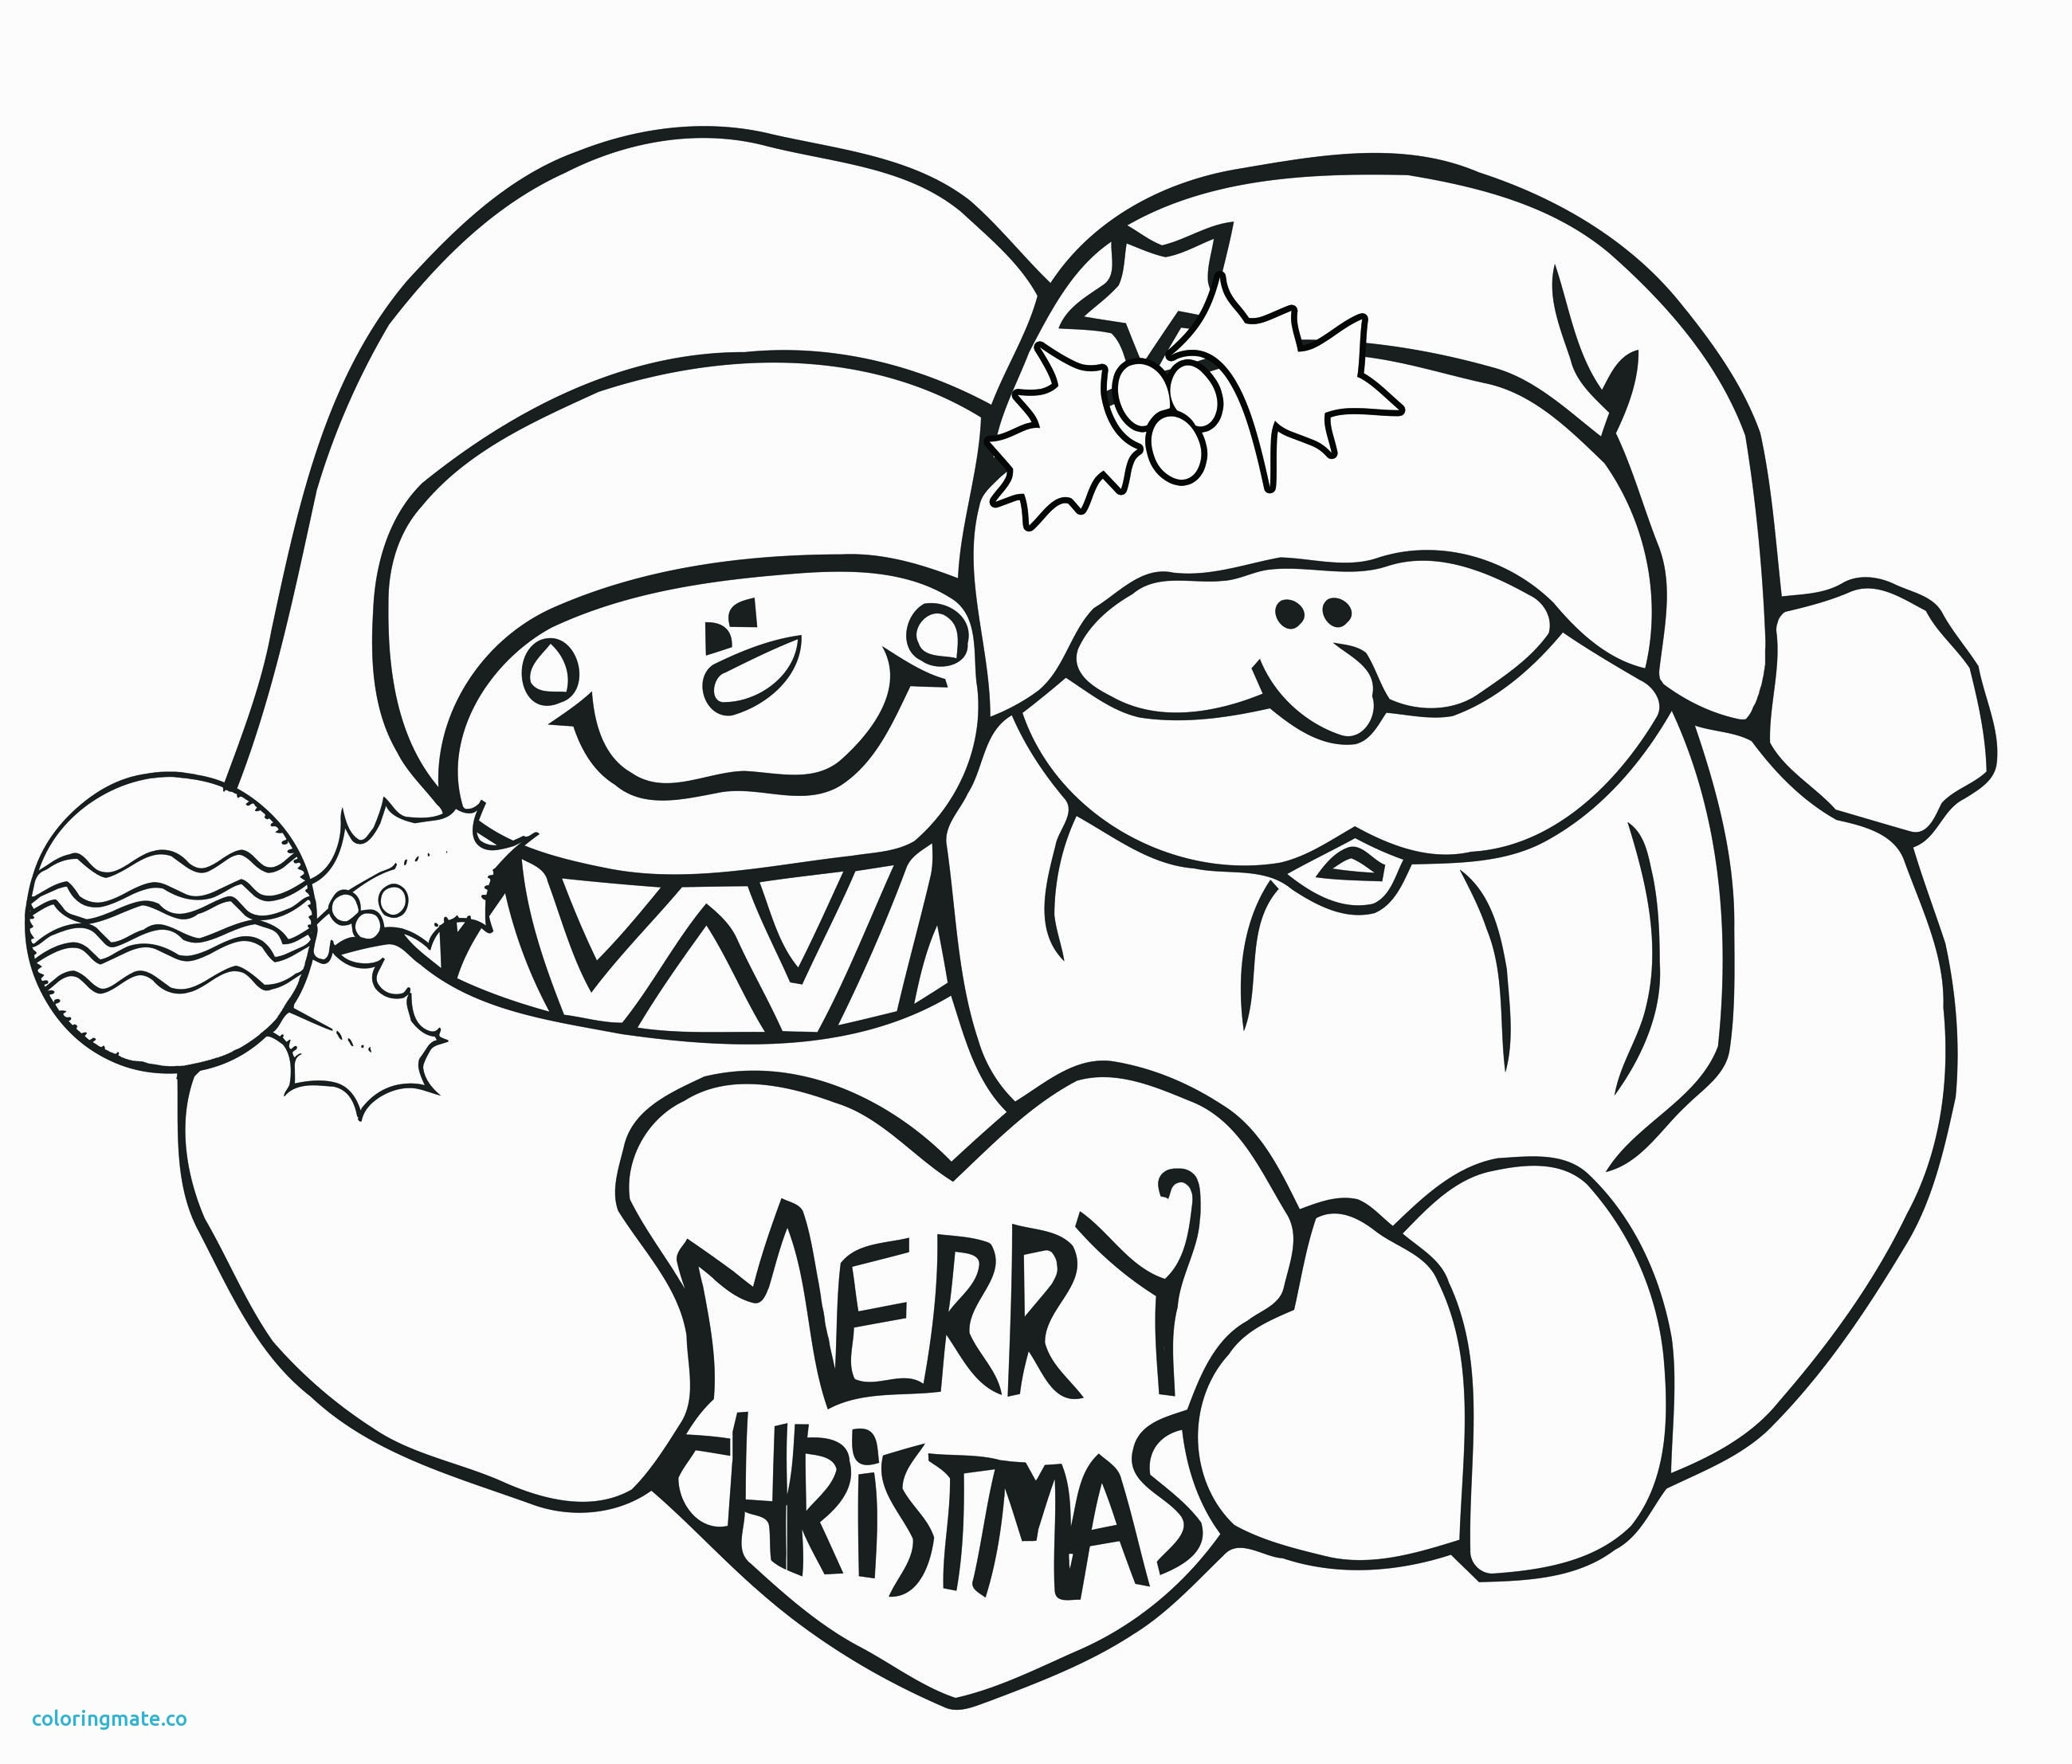 2600x2214 Fresh Cute Food Coloring Pages Elegant Cute Food With Eyes